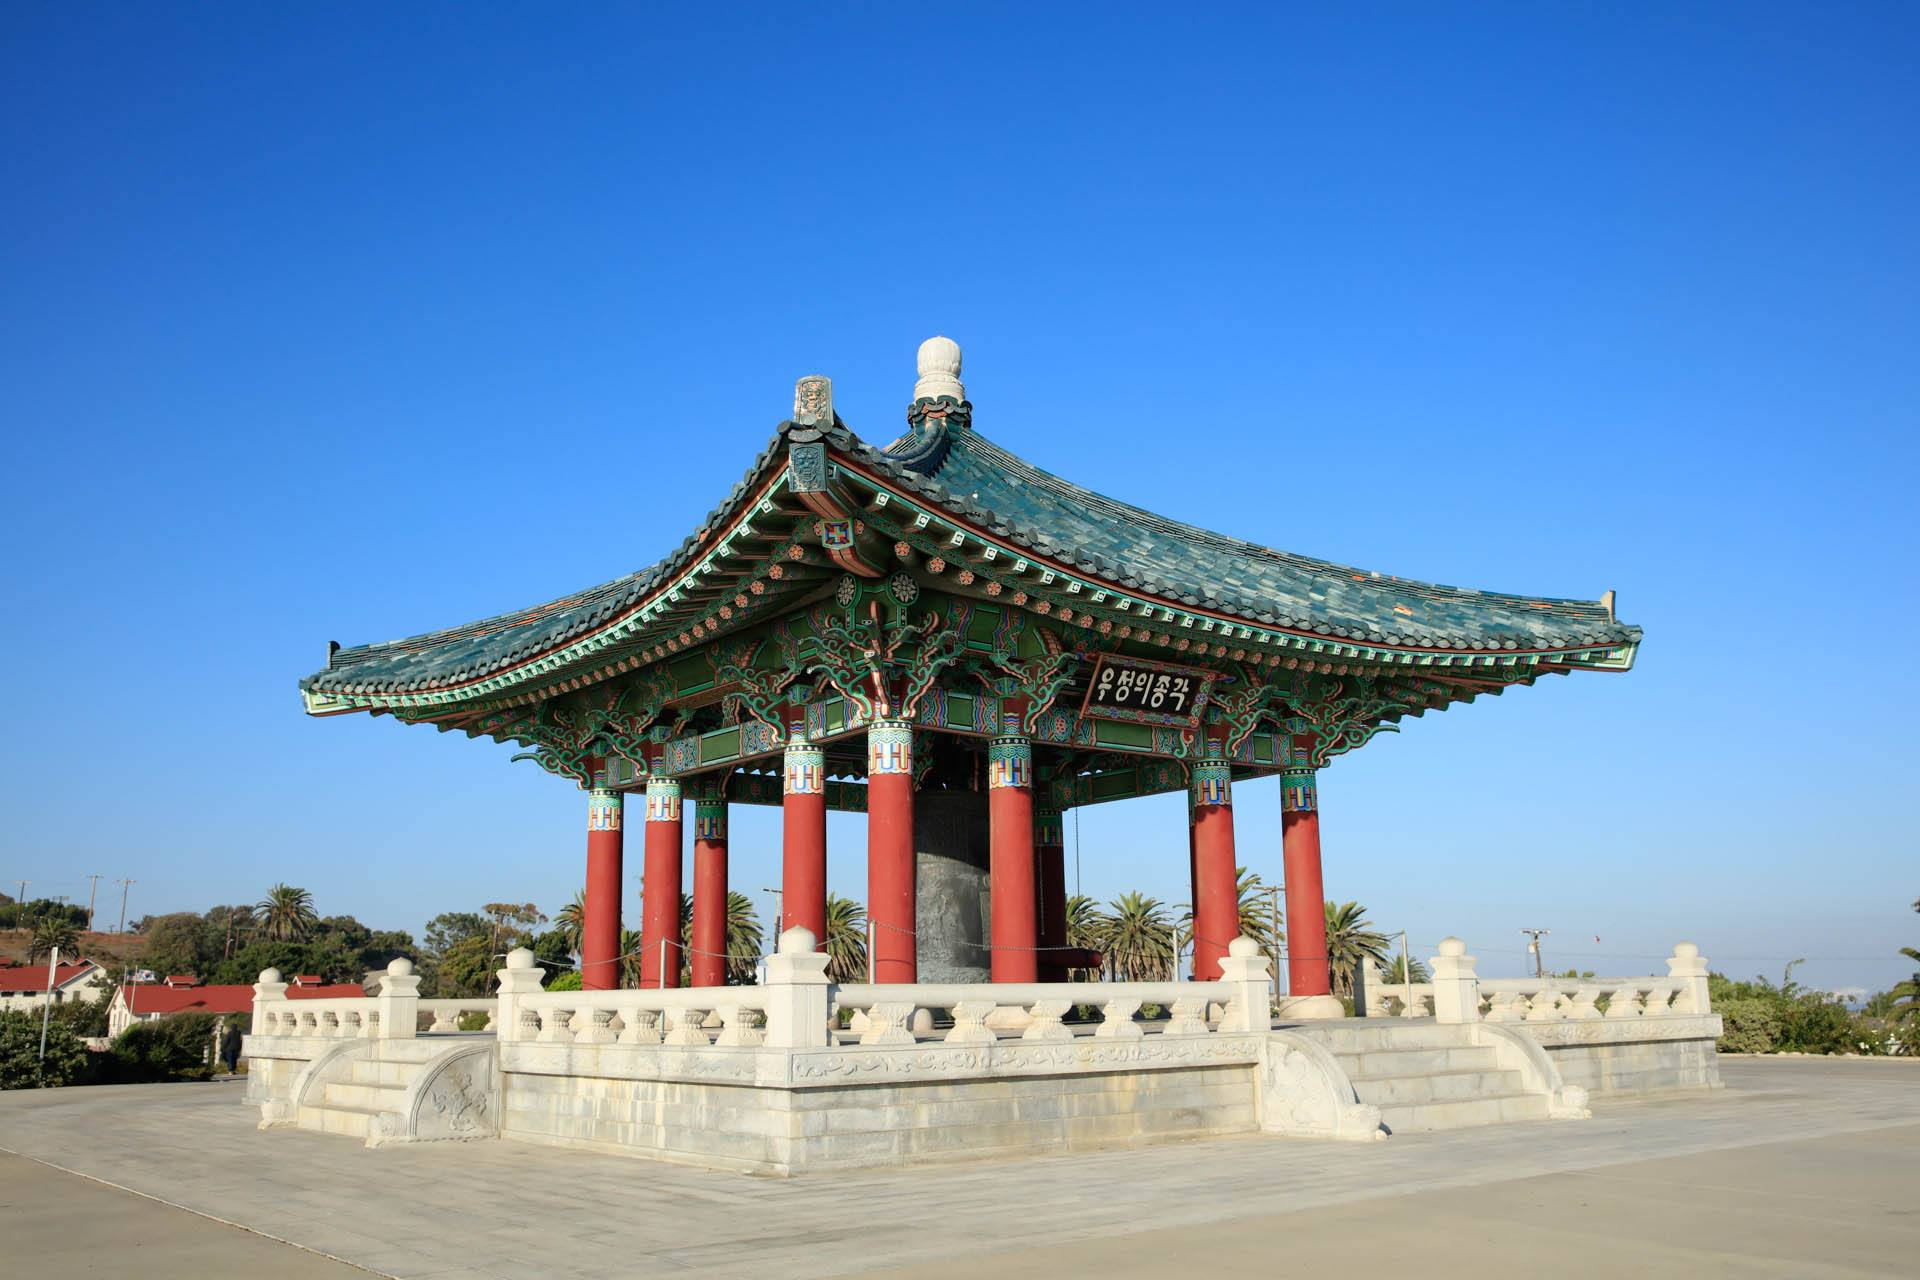 Korean Bell of Friendship in San Pedro